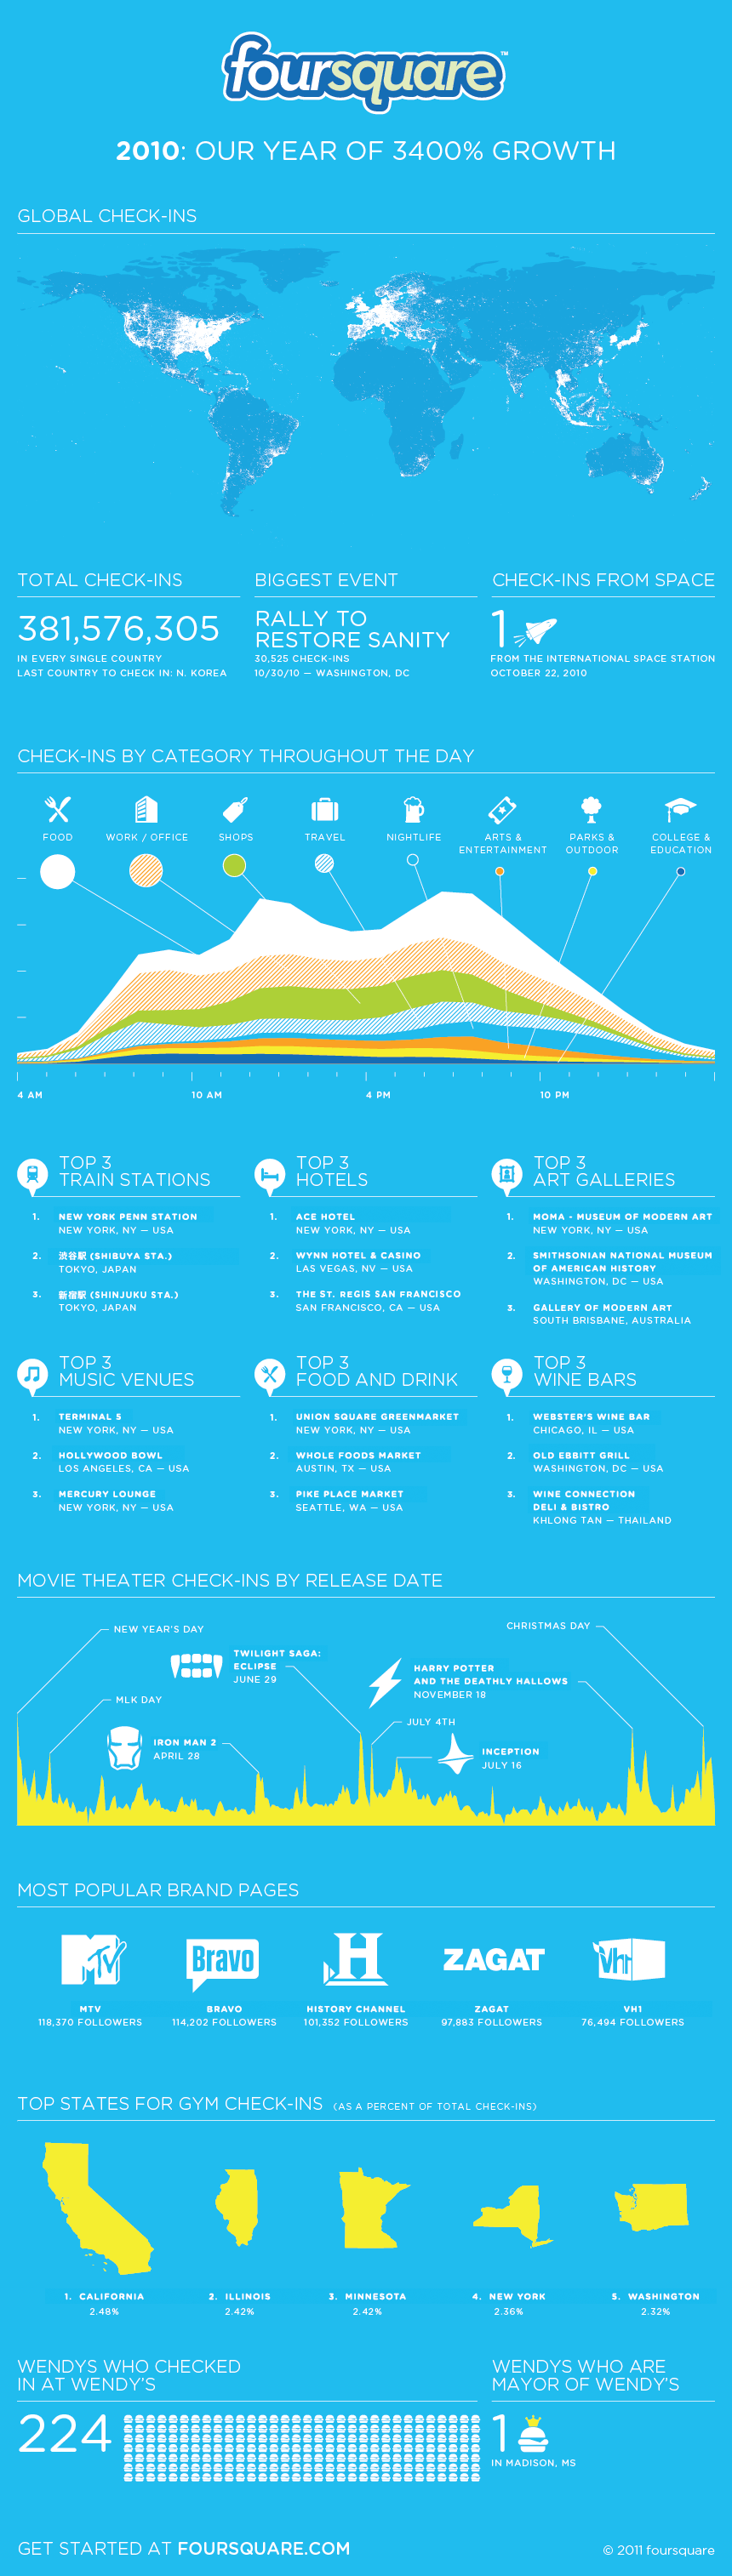 foursquare 2010 Foursquare grew 3400% in 2010 [Infographic]